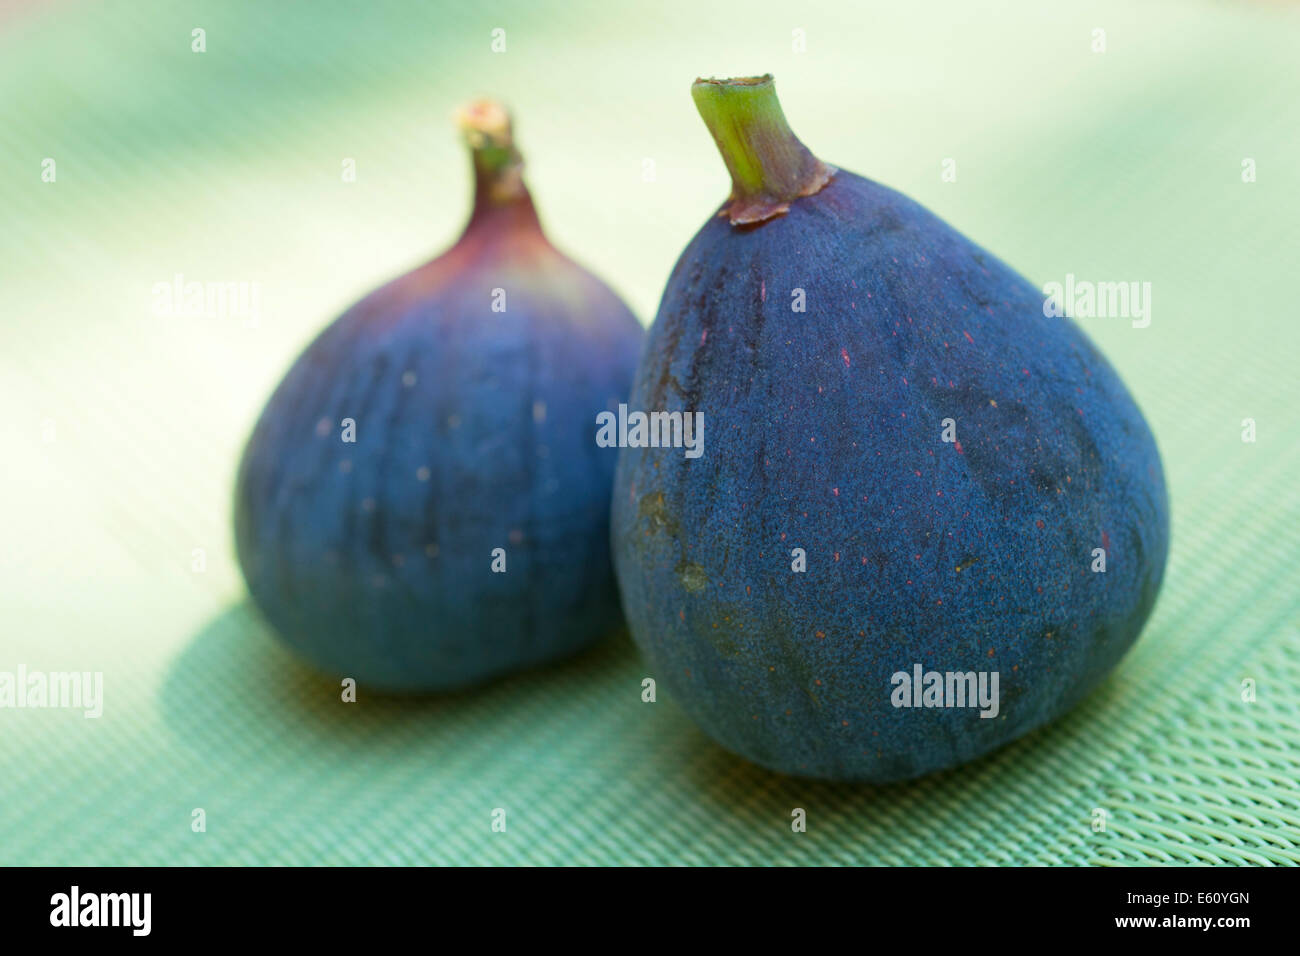 Black Purple Figs, Black Mission Figs - Stock Image